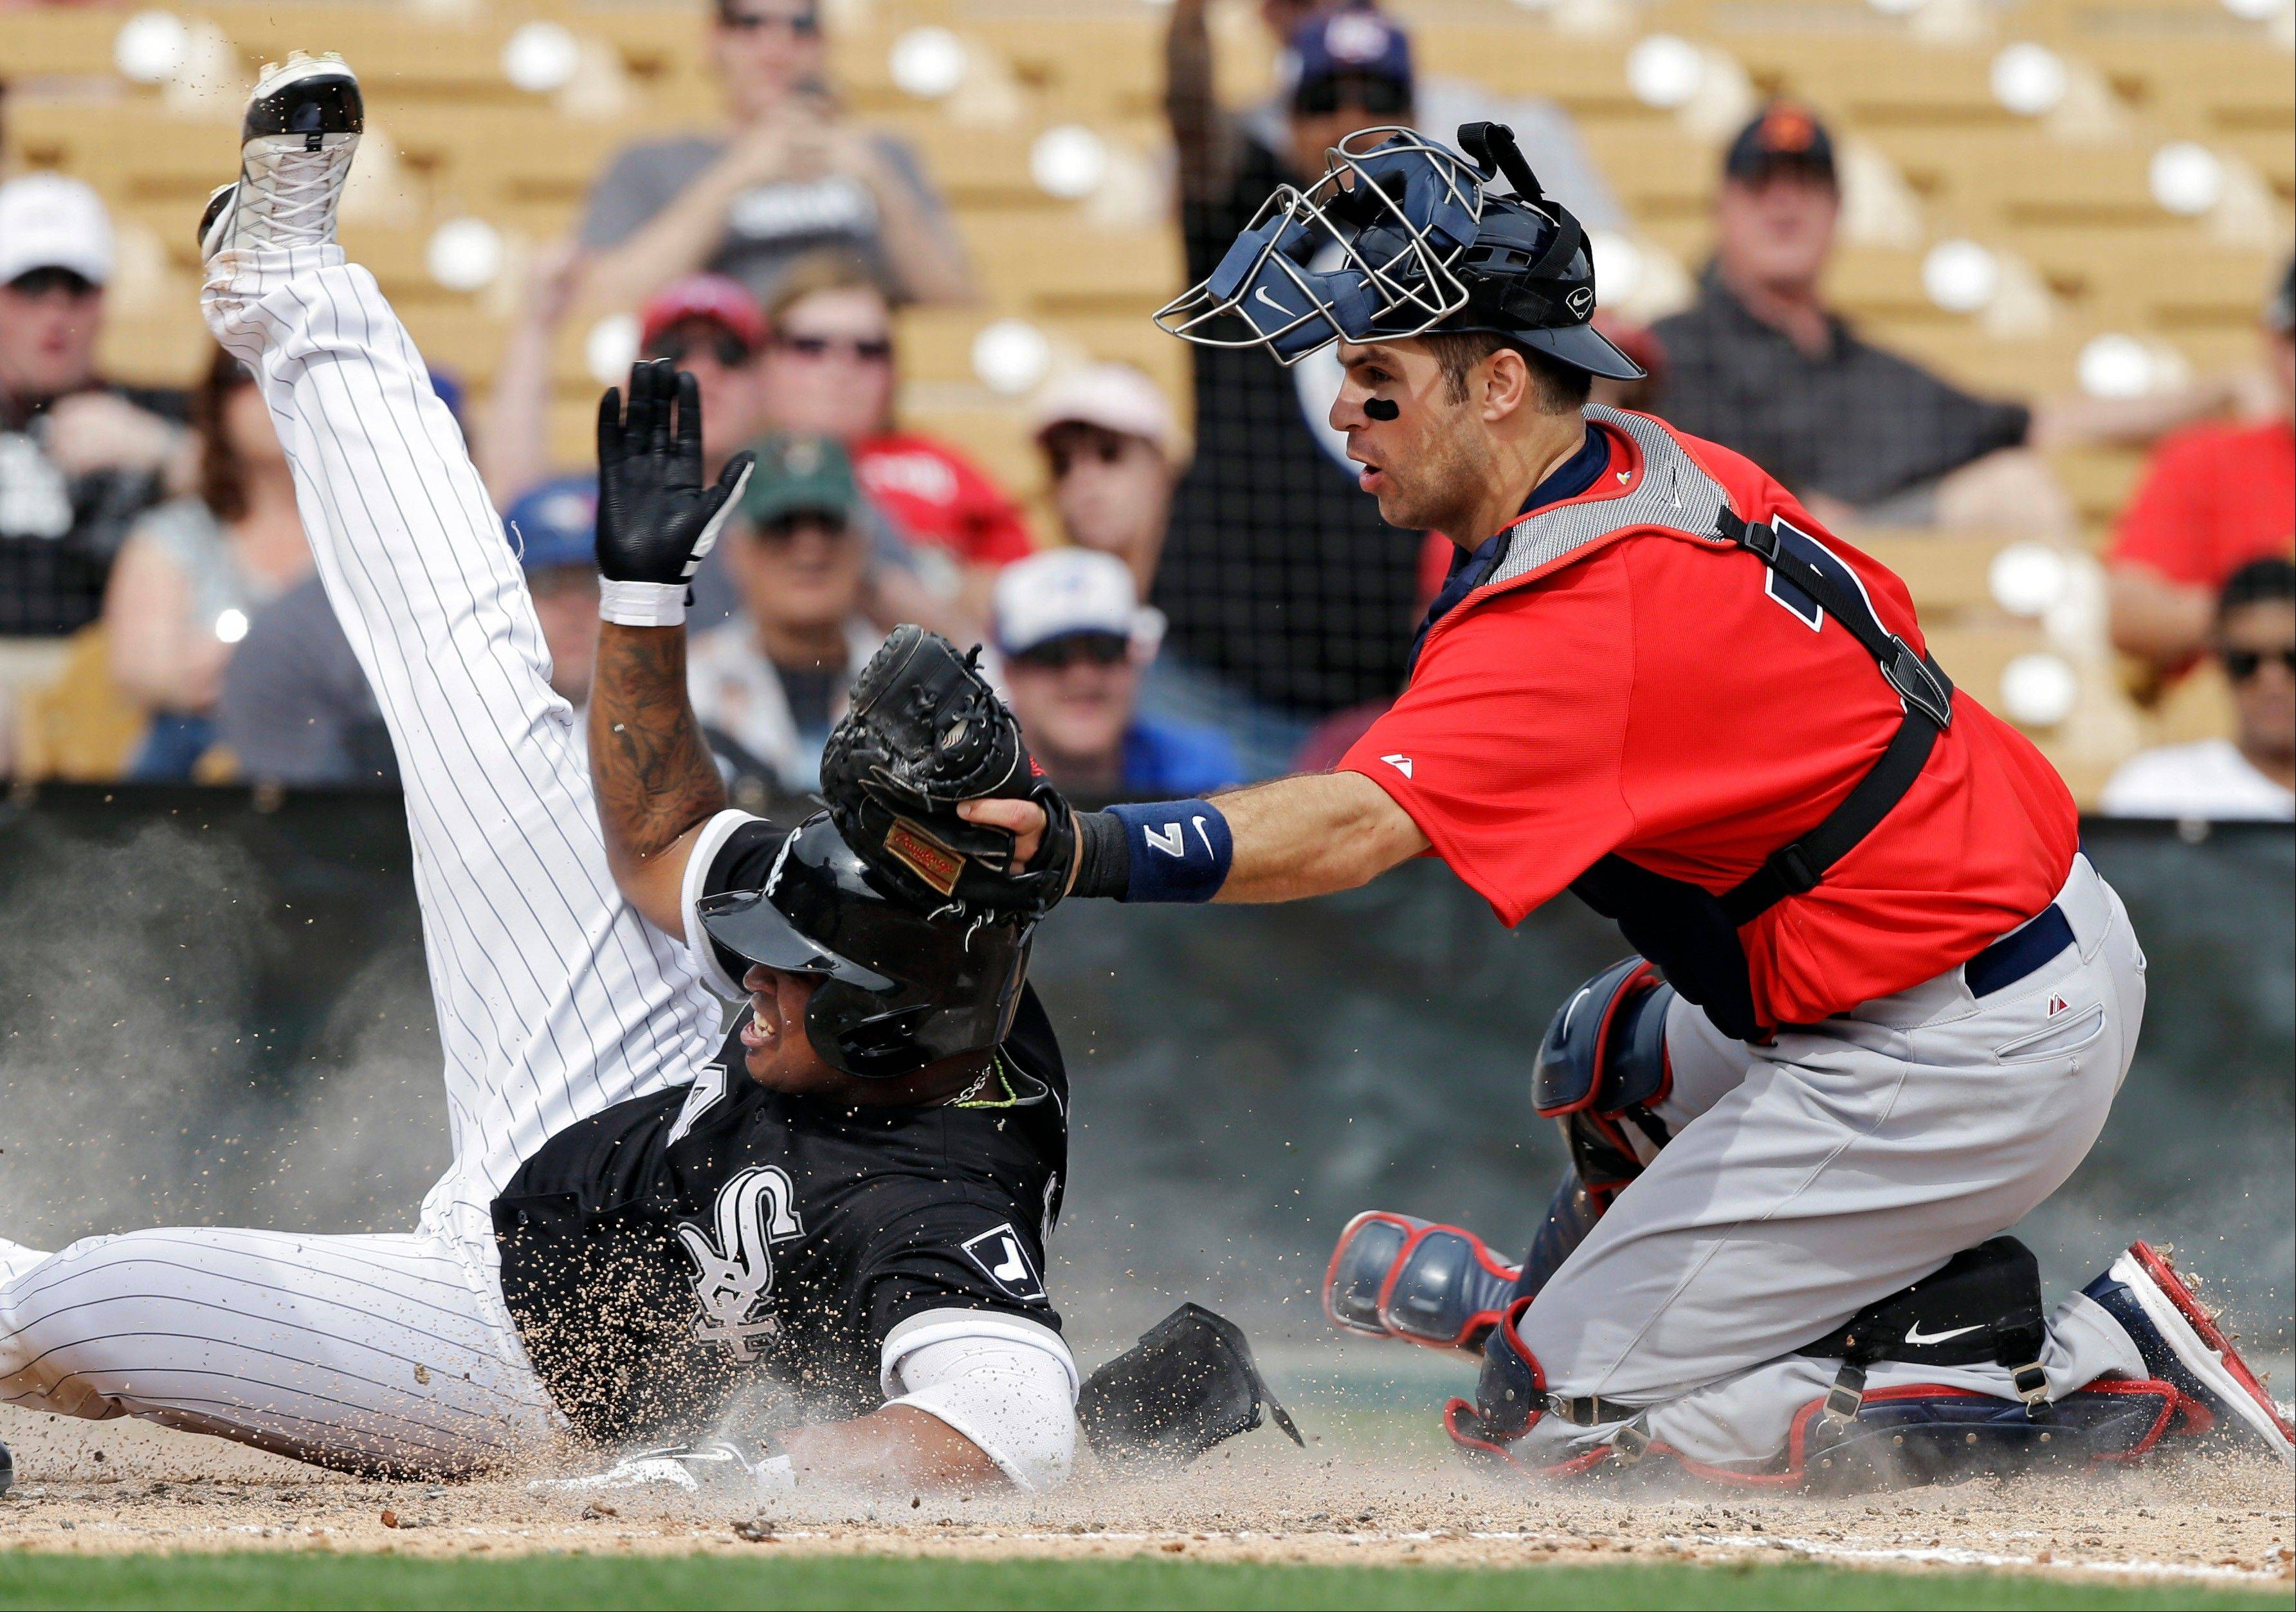 United States catcher Joe Mauer, right, tags out Chicago White Sox's Dayan Viciedo trying to score from second on a single by Gordon Beckham in the fourth inning of an exhibition baseball game Tuesday, March 5, 2013, in Glendale, Ariz. The game is the first of two exhibitions the United States will play leading up the the start of the World Baseball Classic.